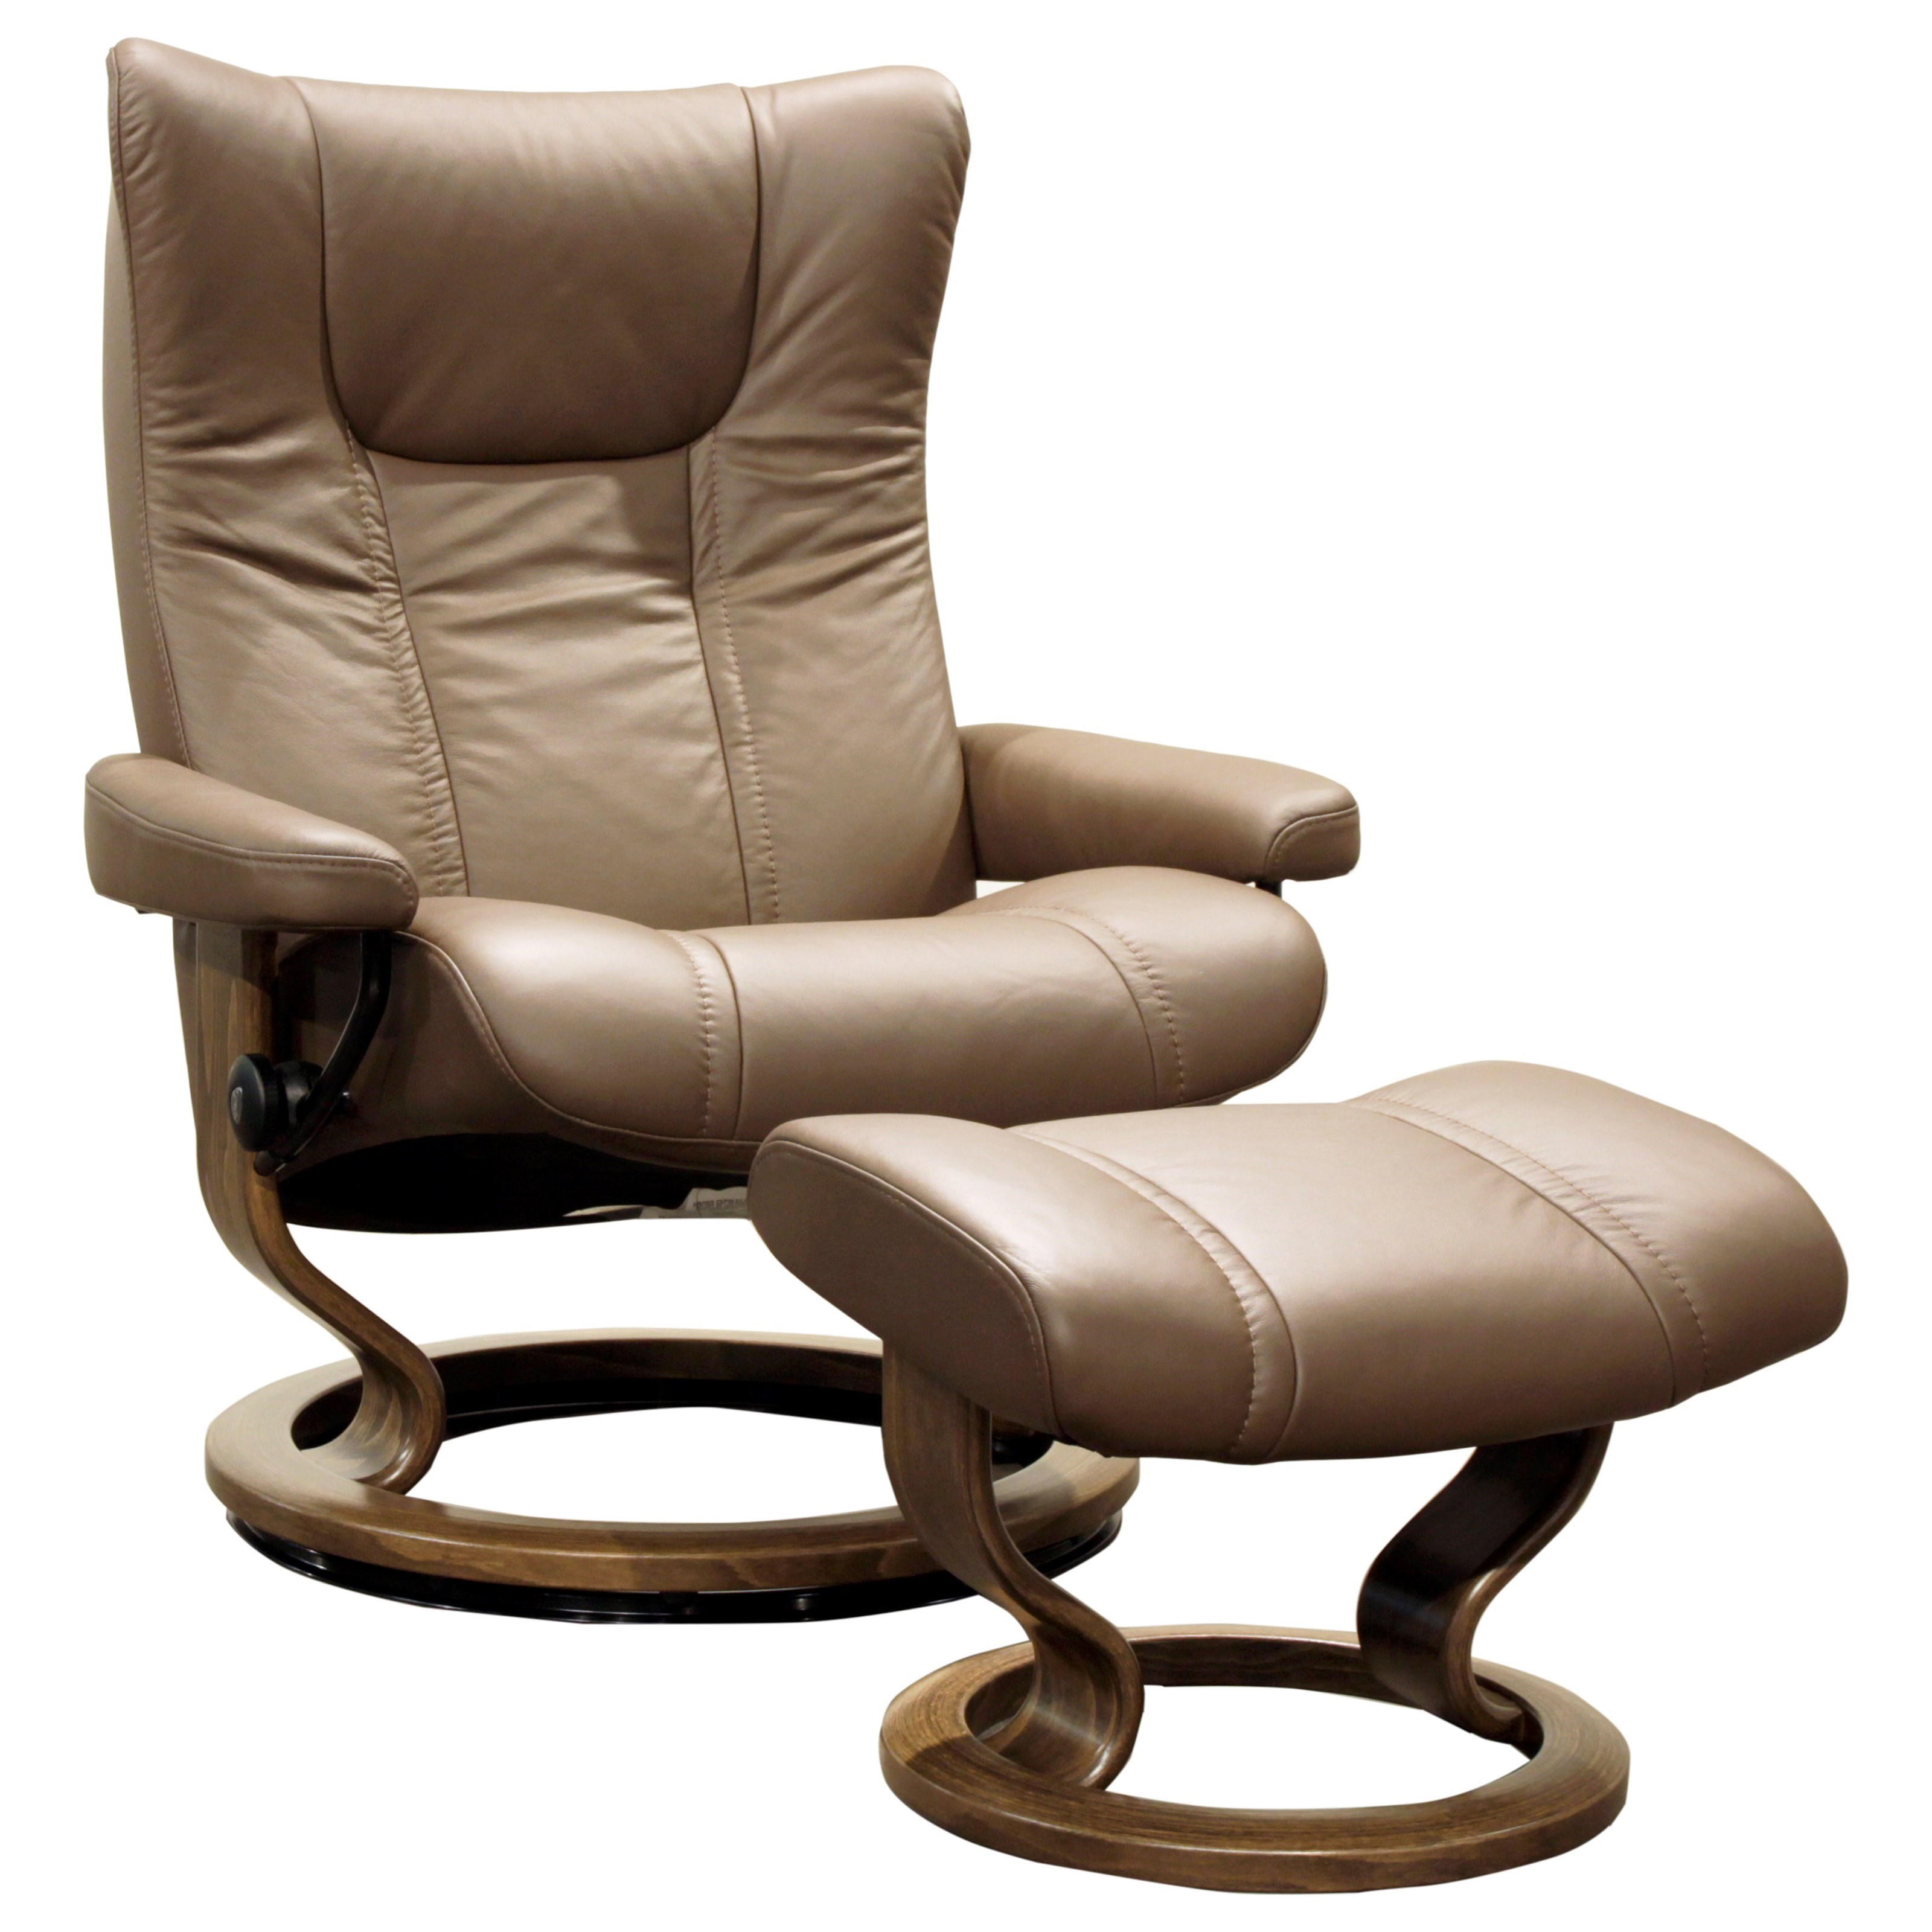 Wing Large Reclining Chair and Ottoman by Stressless at Virginia Furniture Market